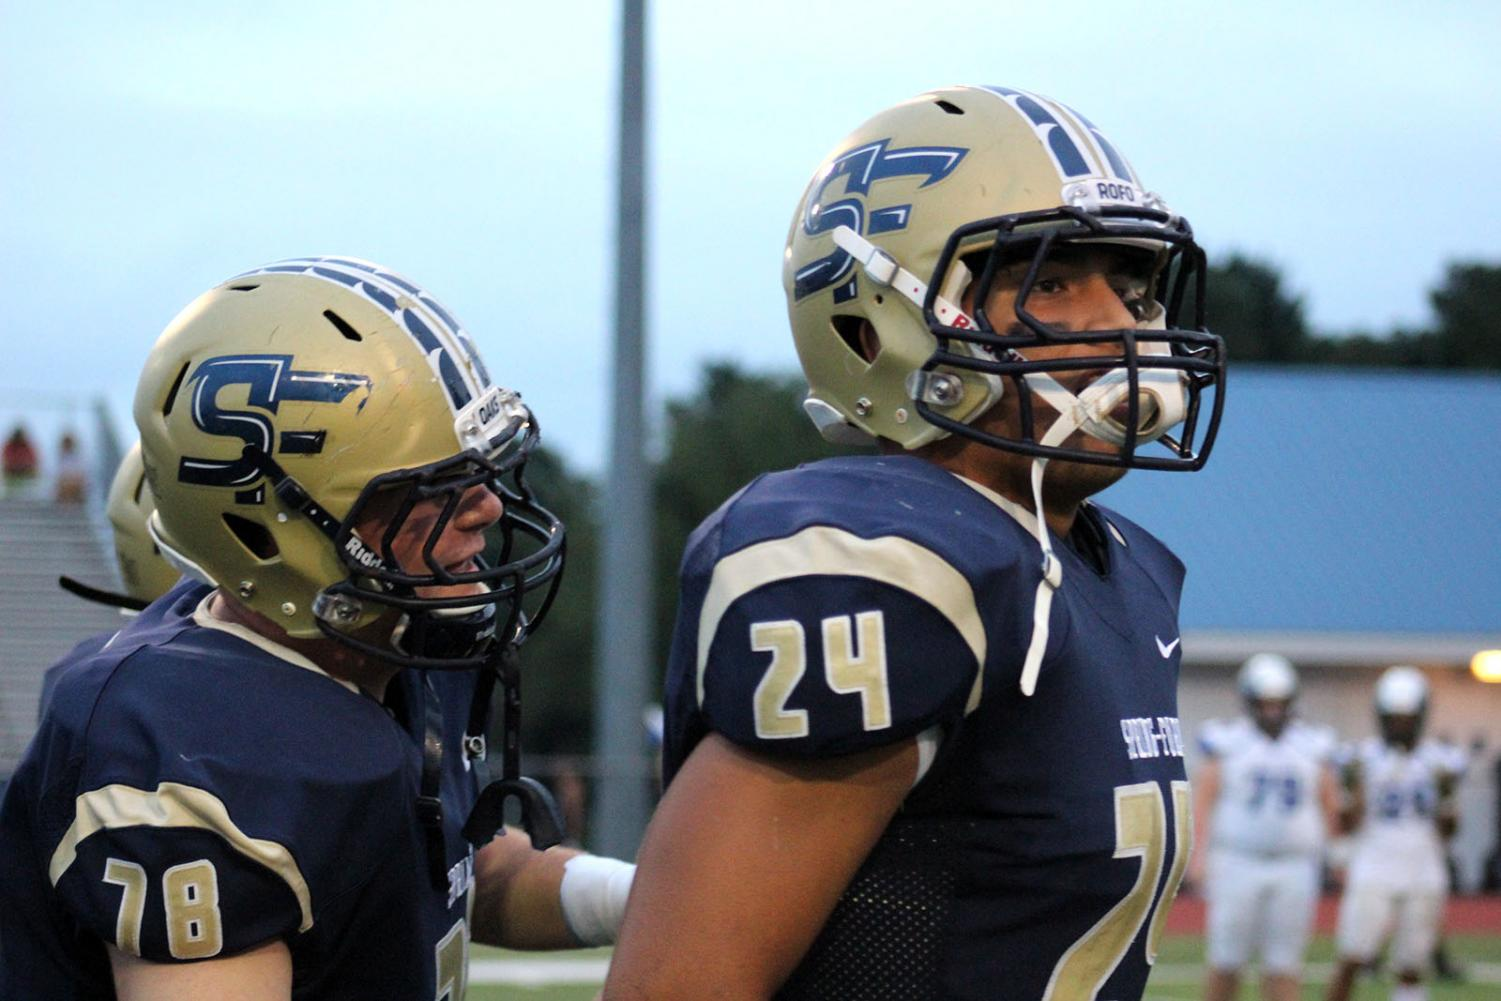 Sean Brogan and James Albert look on during the Spring-Ford football season. The Rams finished the season 8-3.